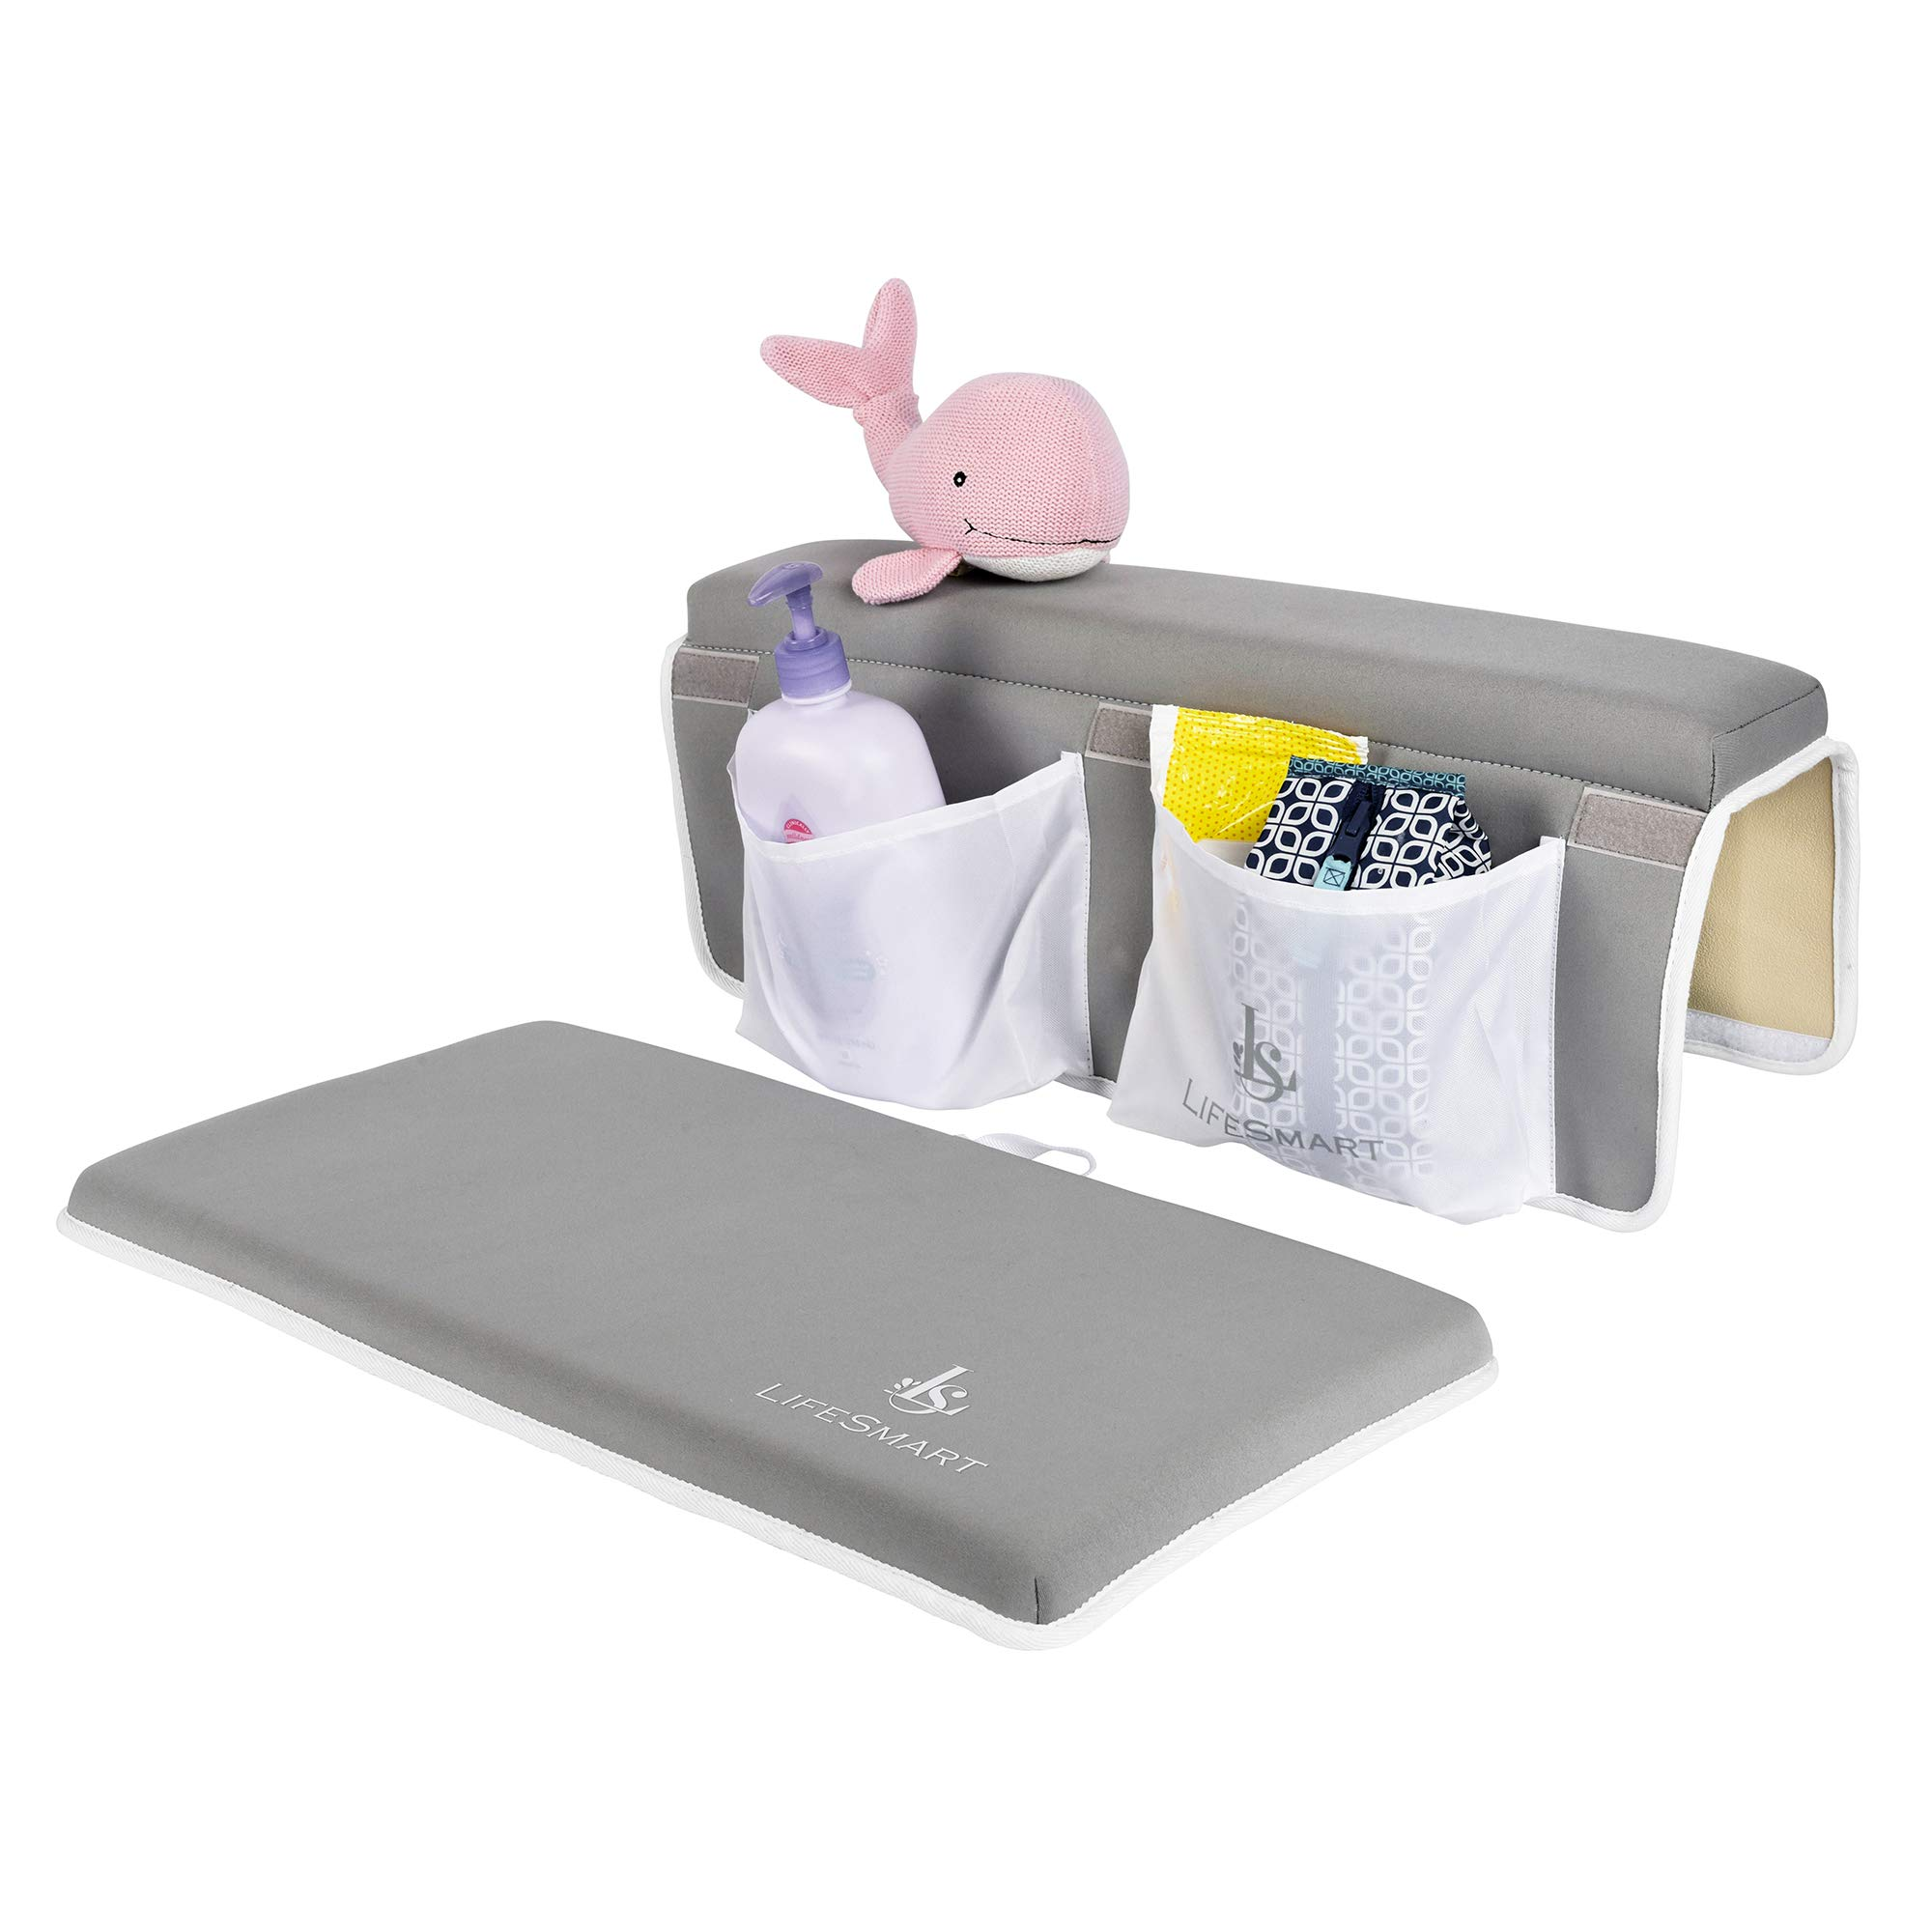 UltraPremium Lifesmart Bath Kneeler & Elbow Rest Bundle - Massive Size & Thicker Padding Than Every Other Brand - Deeper Pockets - SuperSticky Suction Cups - Quick Drying Washable Anti-Mold Neoprene by LifeSmart